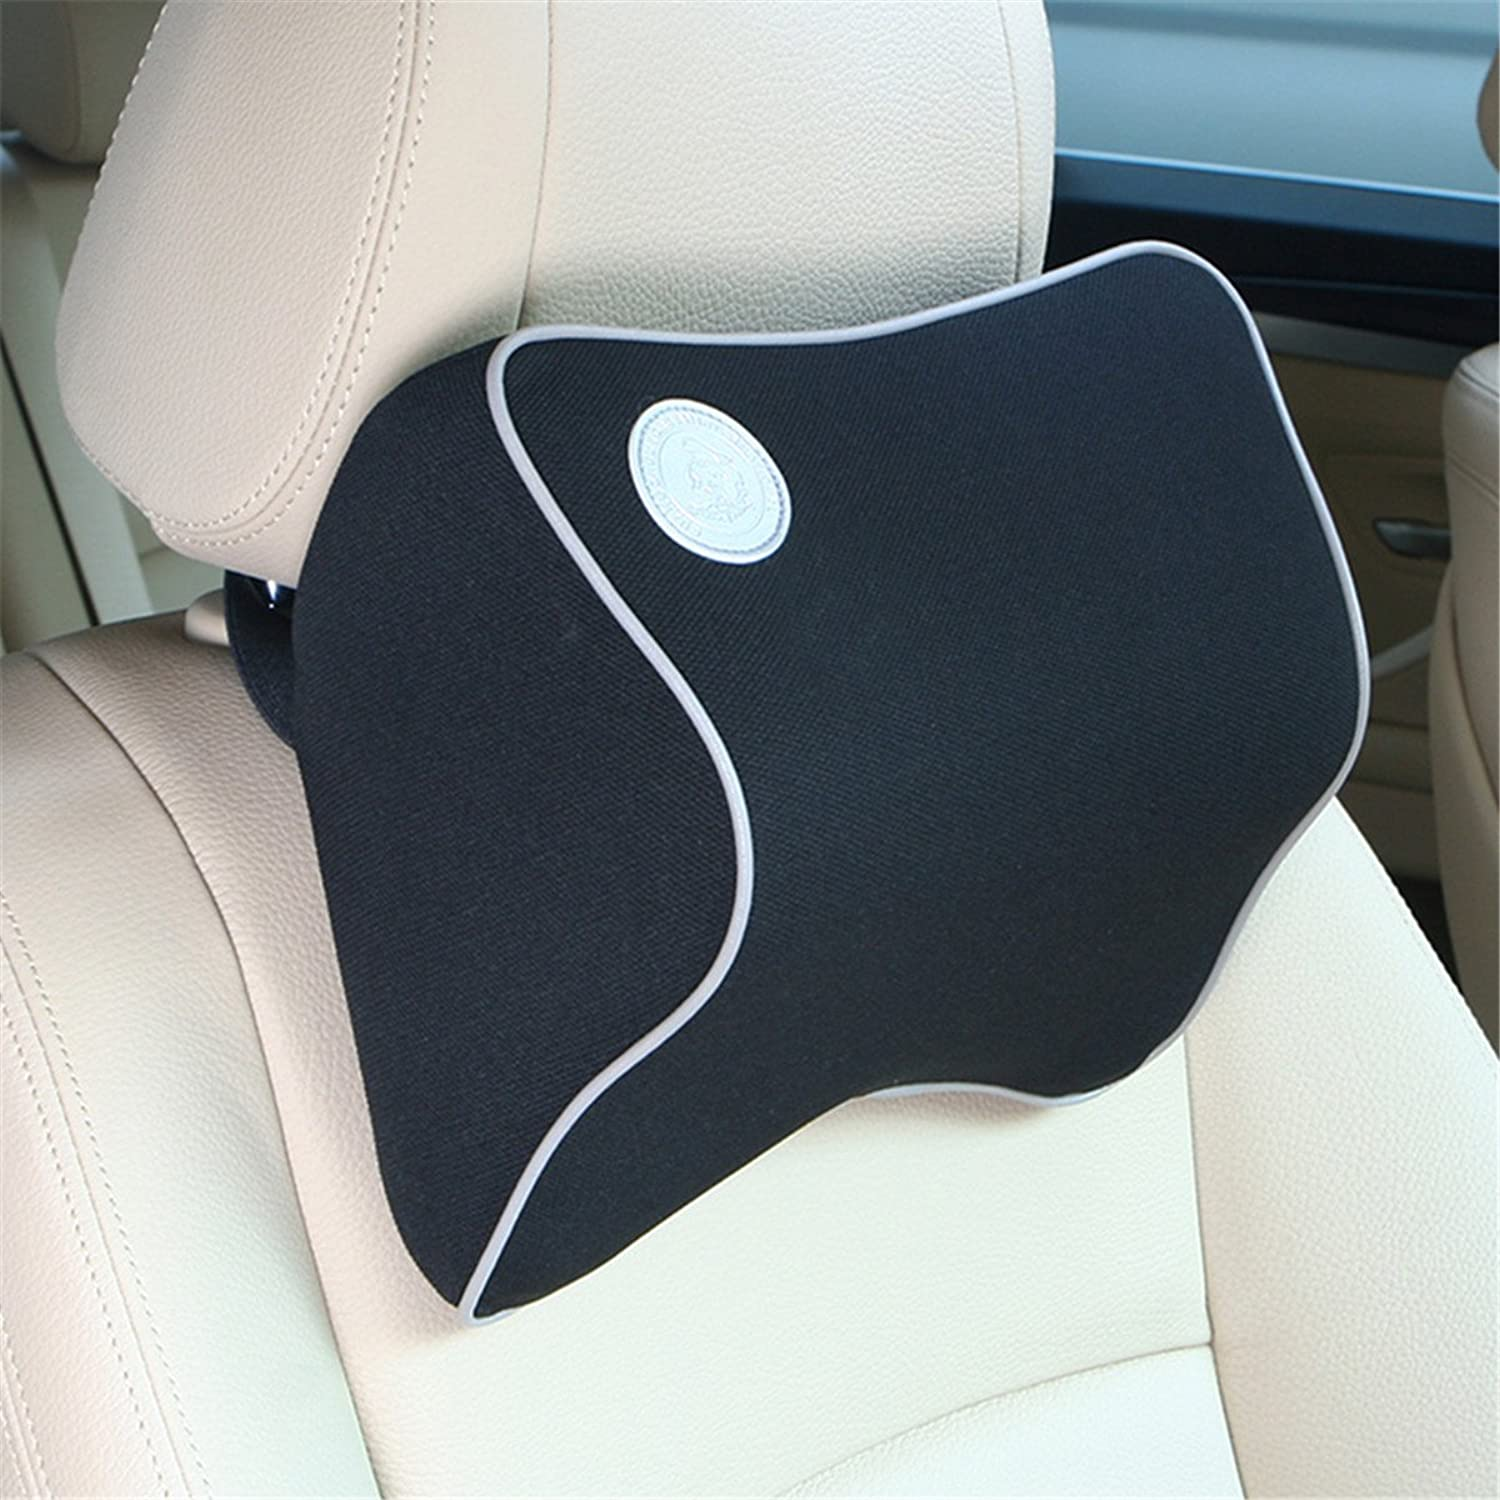 DMMSS Head Space Within A Memory Foam Pillow Neck Guard Auto Accessories Jewelry